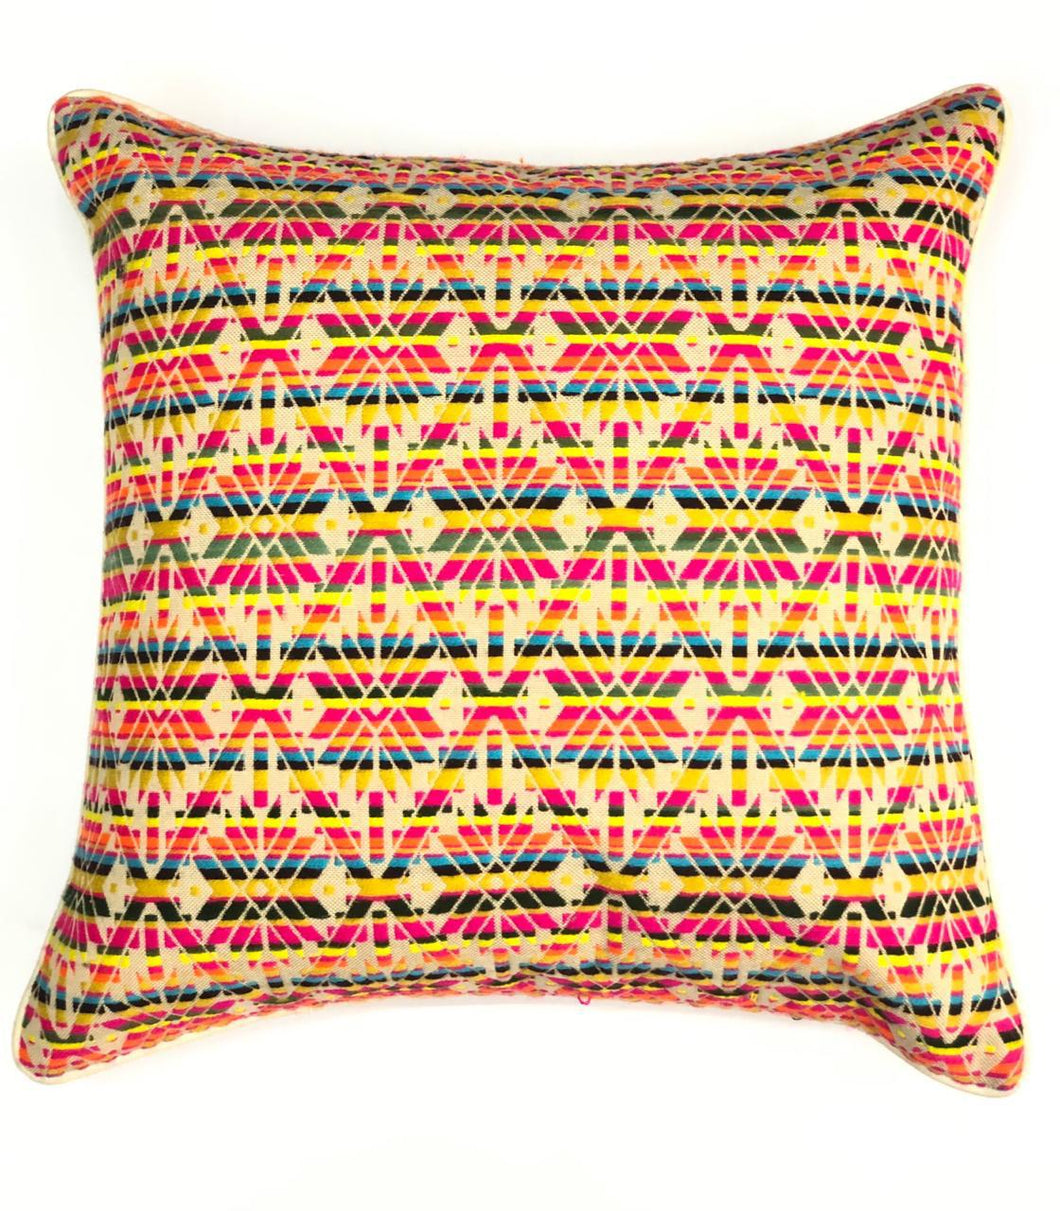 Neon Yellow And Orange Geo Woven Throw Pillow Cover